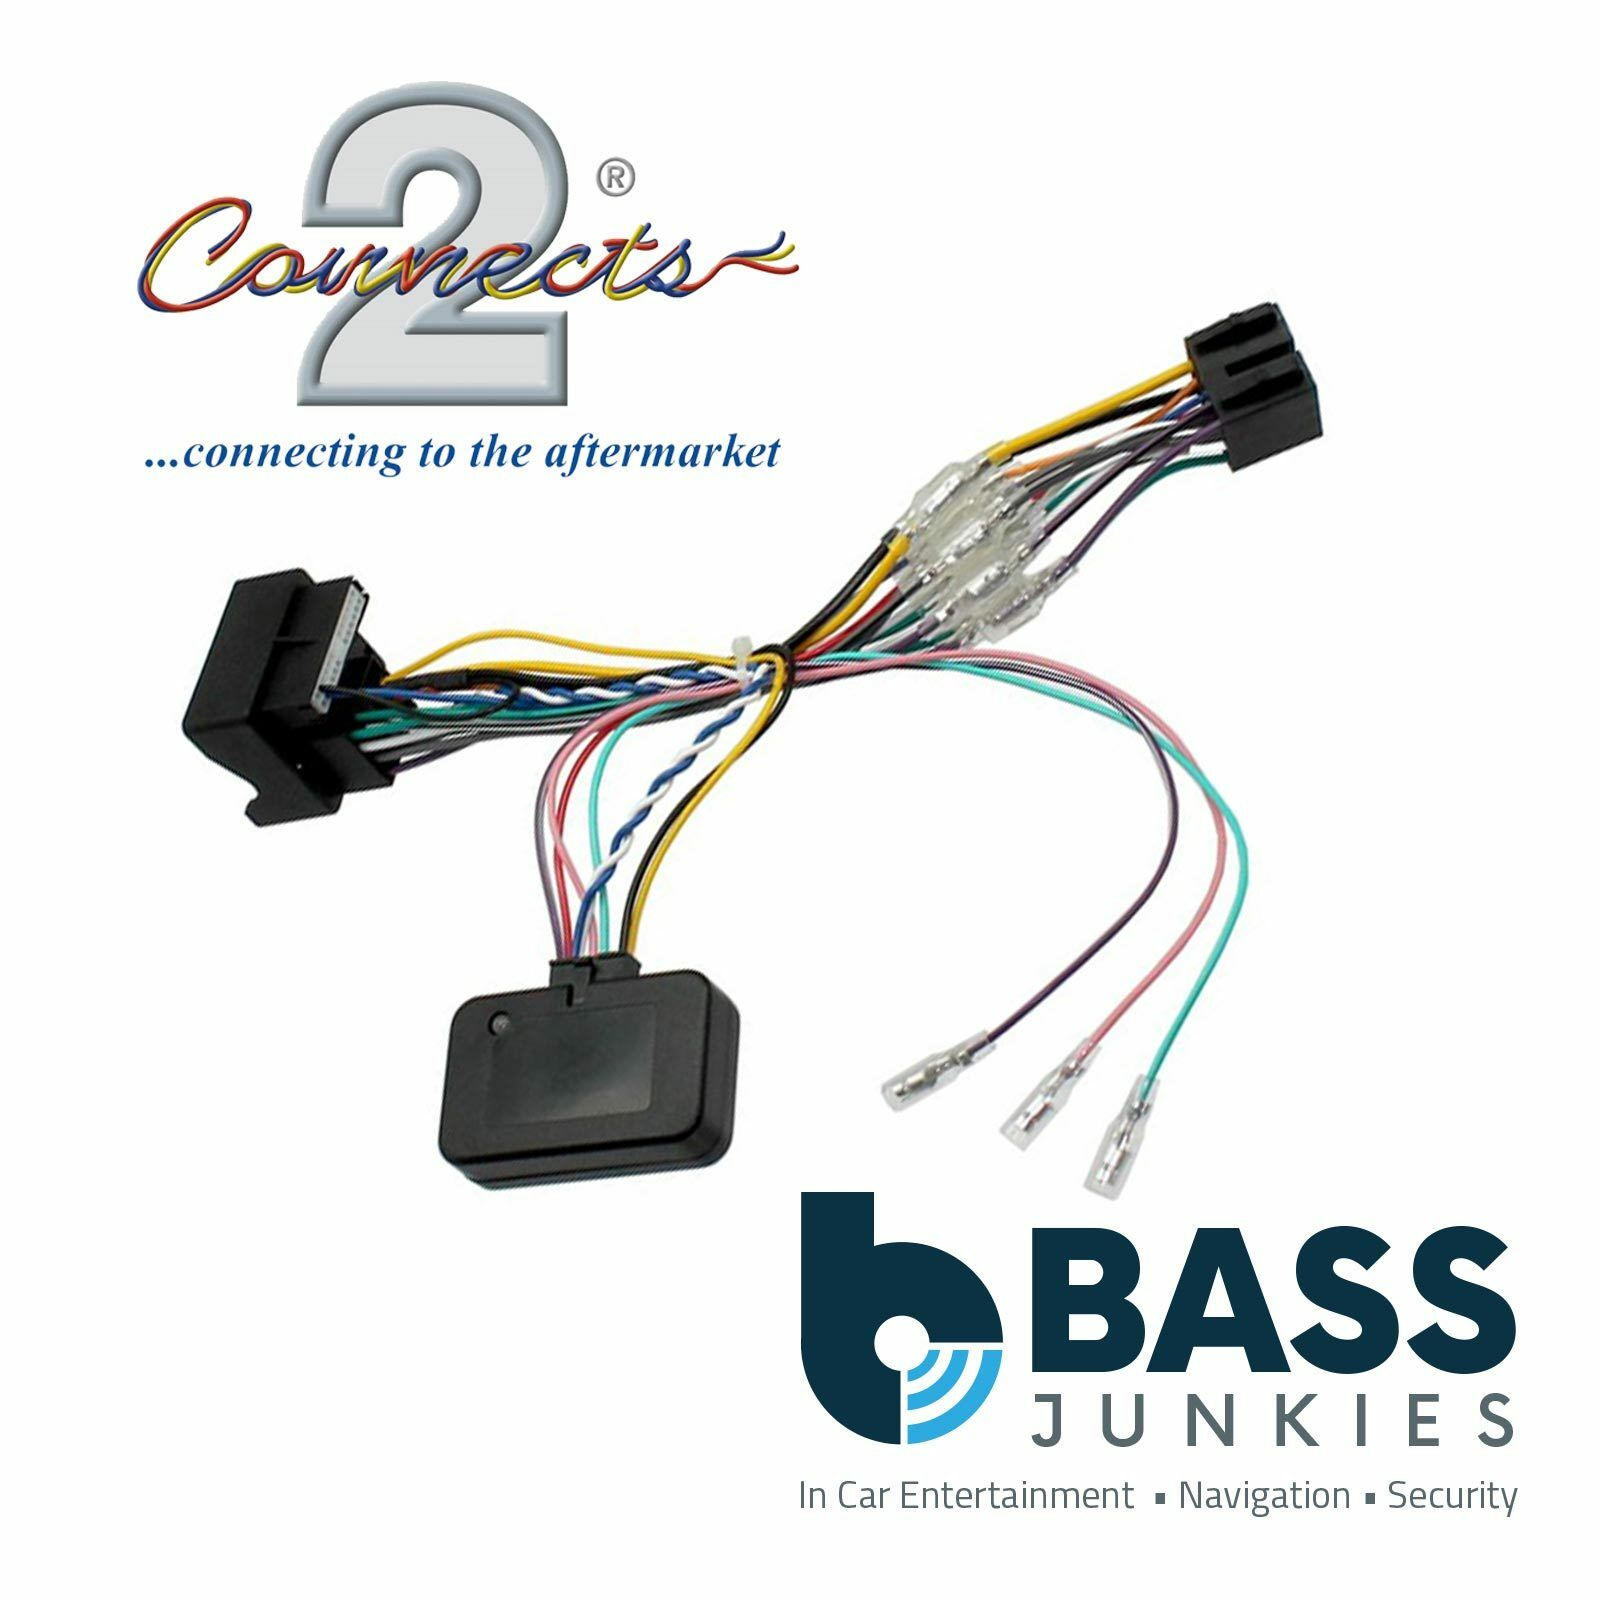 Ford Focus 2005 2011 Car Stereo Quadlock Wiring Harness Ignition Adapter Lead 1 Of 1free Shipping